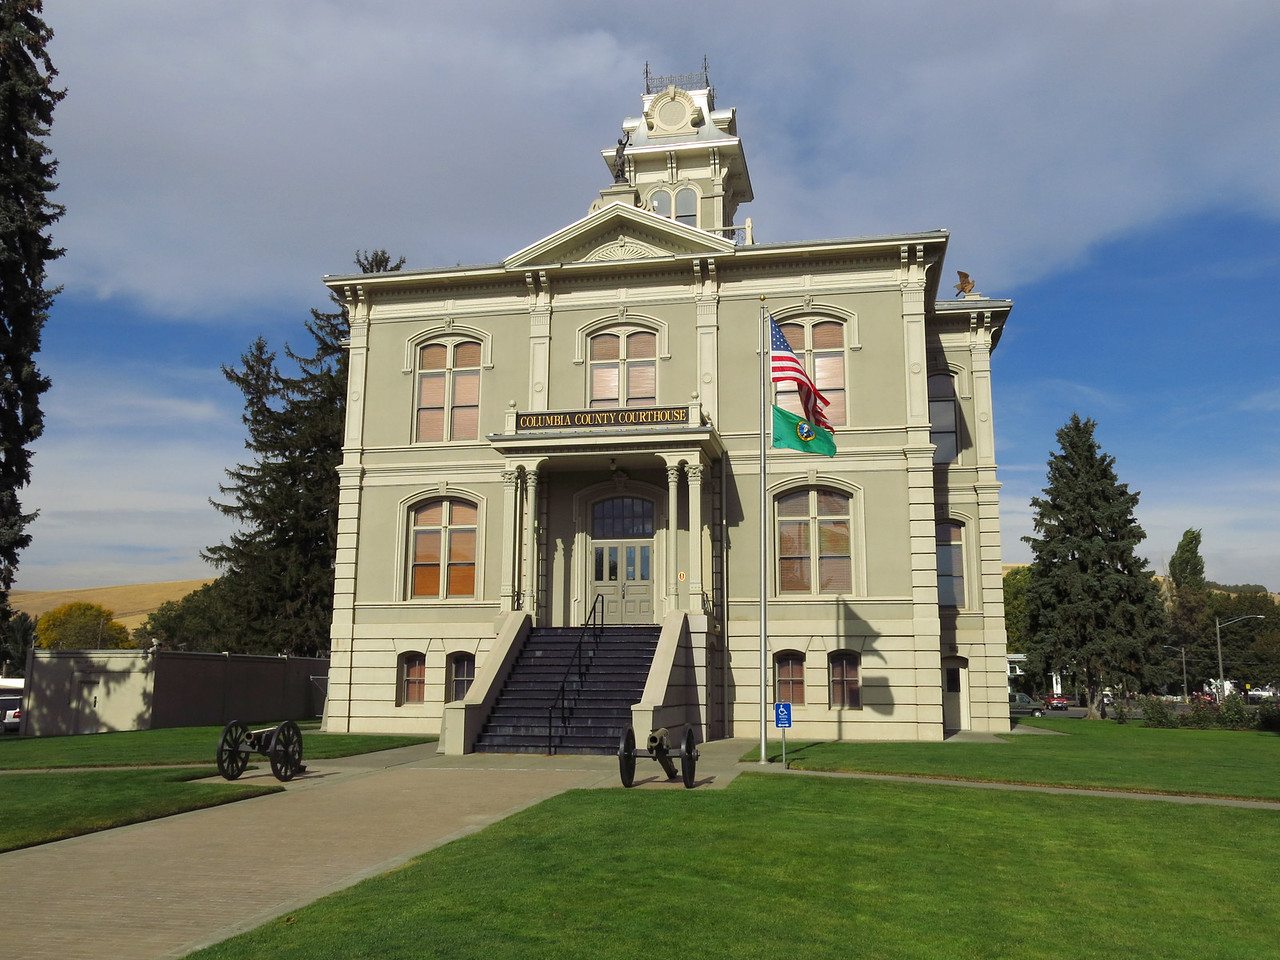 The south side of the Columbia County Courthouse faces Main Street.